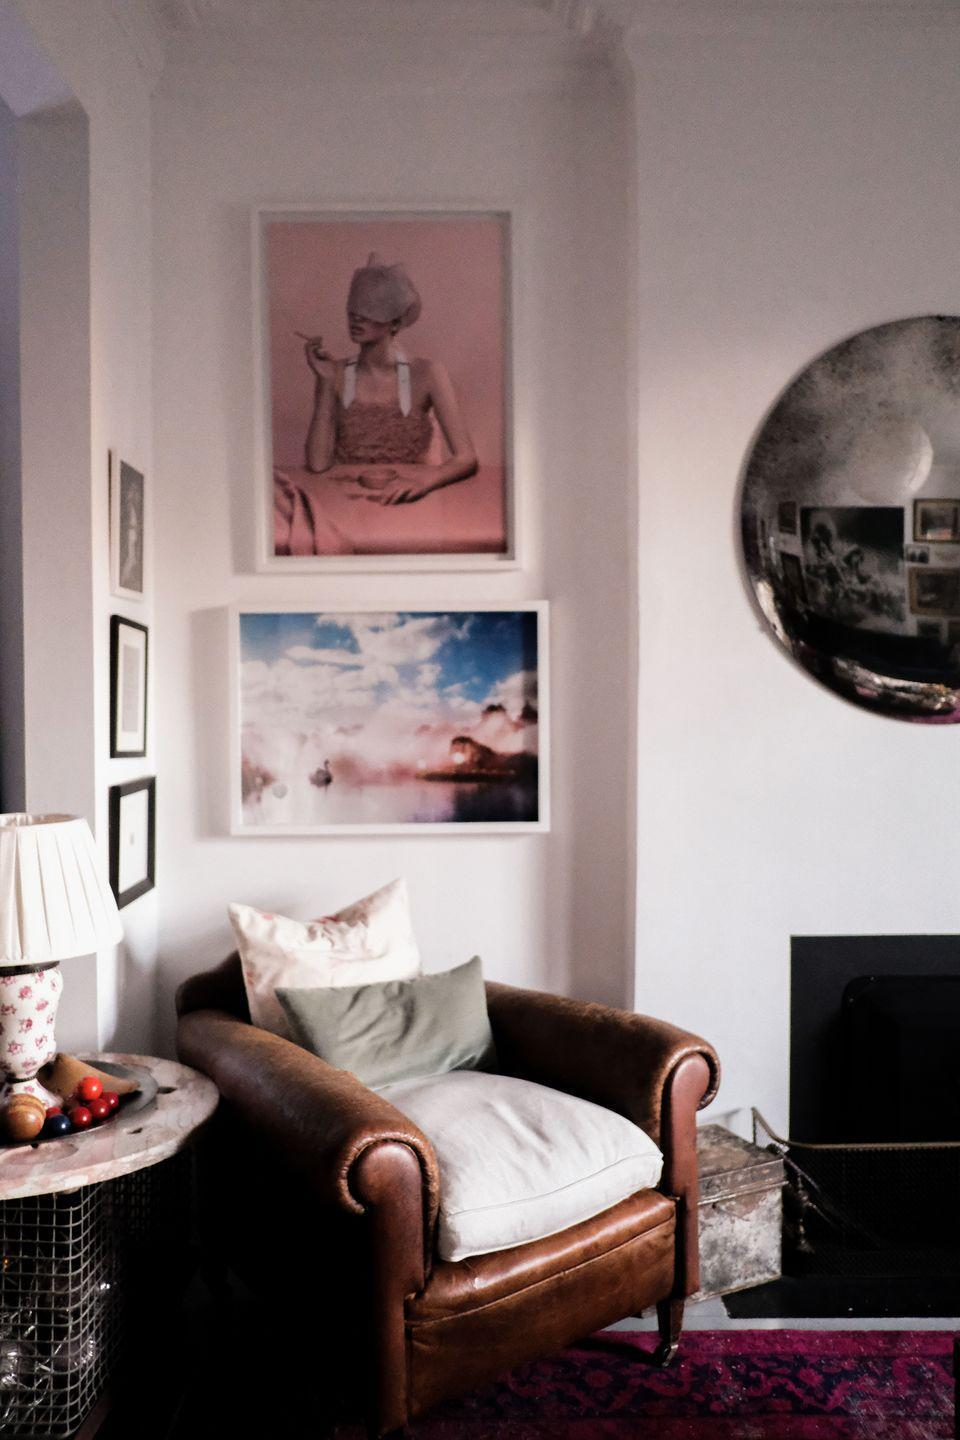 """<p>""""The pink portrait is one of the first pieces of art we bought together - it's by Carolina Mizrahi,"""" says Angus. """"The image of the swan lake was taken at our wedding by our good friend, the photographer Alex Bramall, he sweetly gave it to us framed as a wedding gift. We love the antique leather chair which was bespoke made for a 1940s gentleman who was almost seven-foot tall which is why it is abnormally deep. It made an amazing day bed for both our children to nap in when they were babies.""""</p>"""